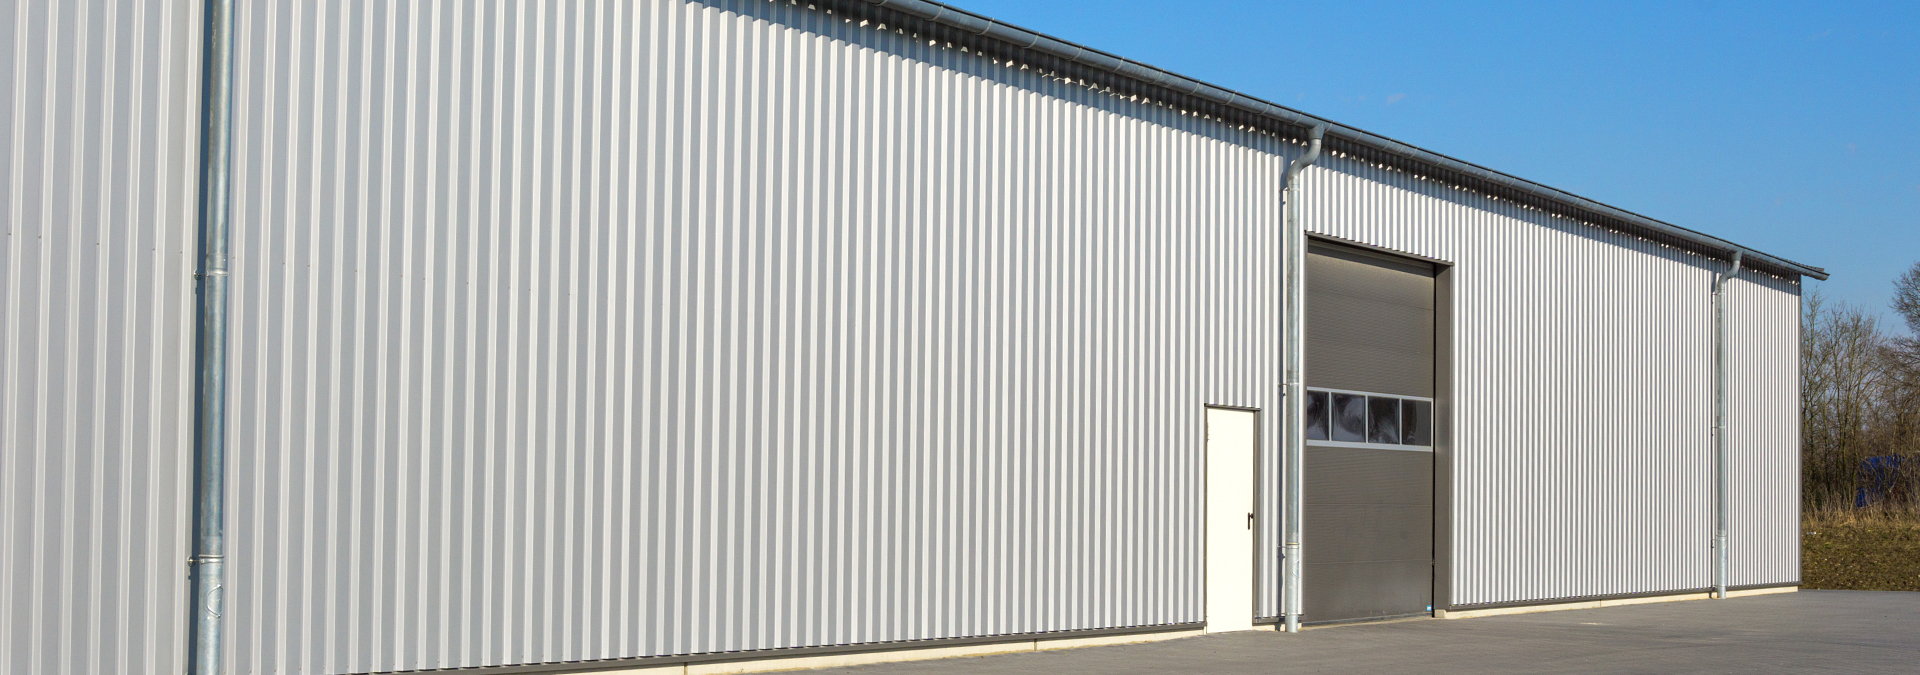 Custom metal siding on building by LBH Timber Mart